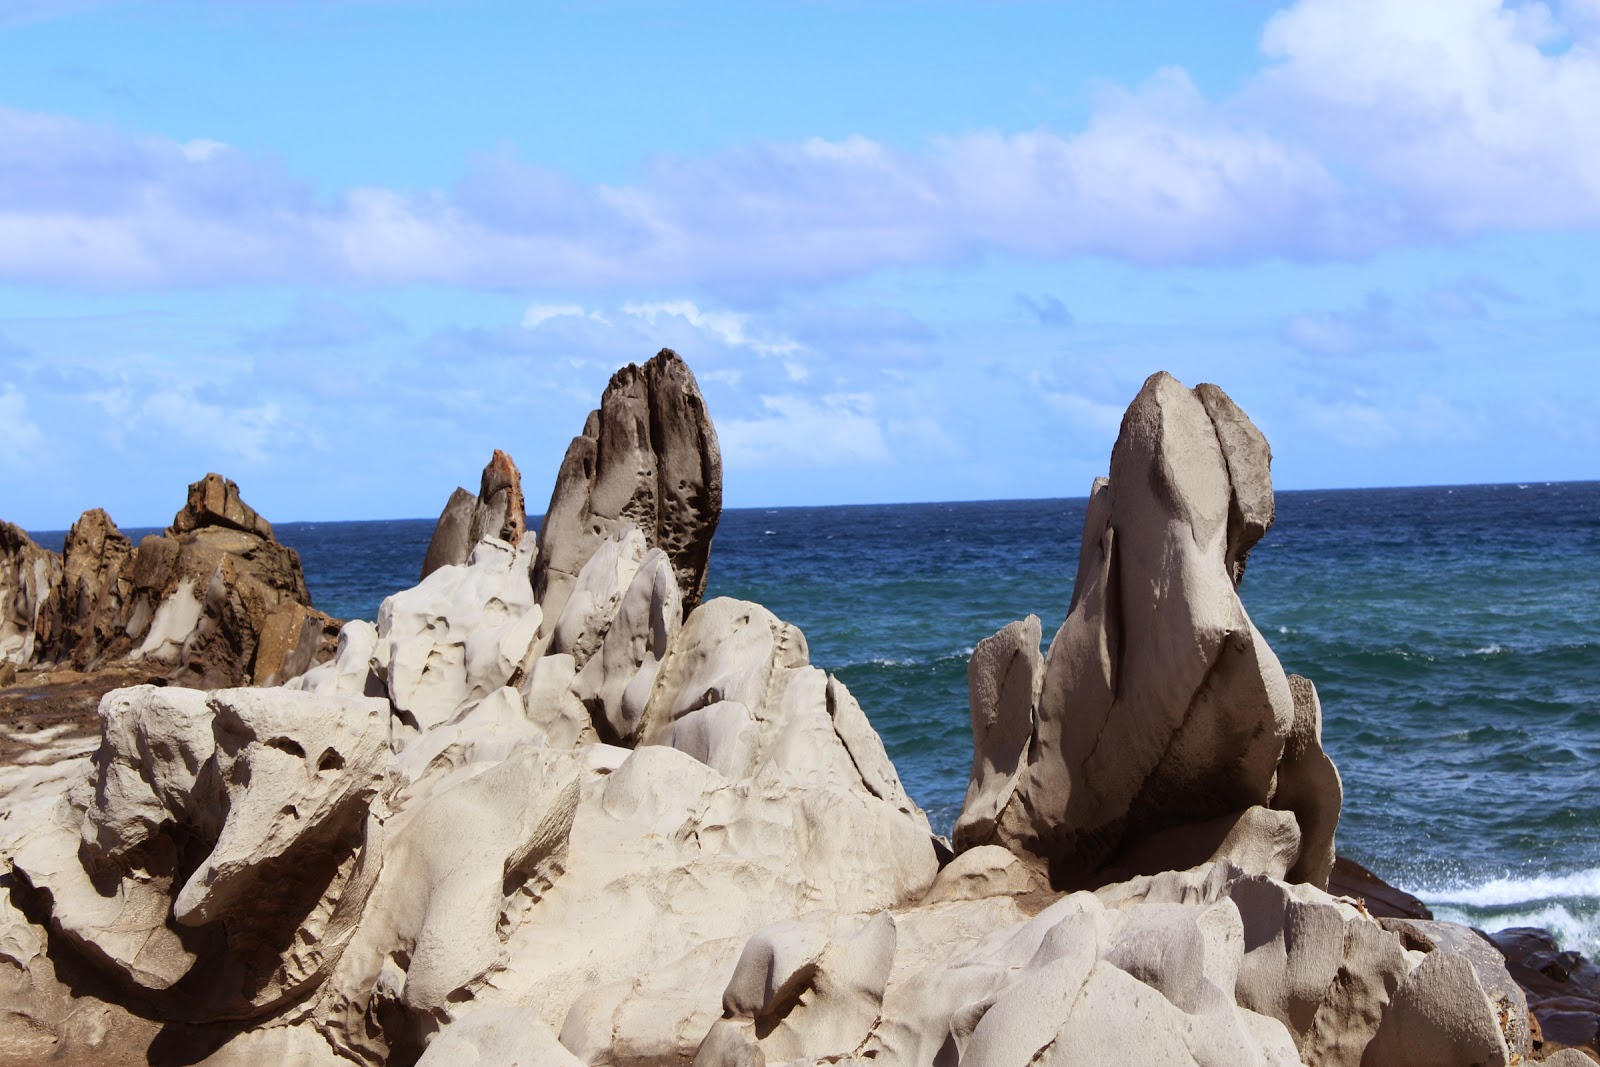 Kapalua: Dragon's Teeth